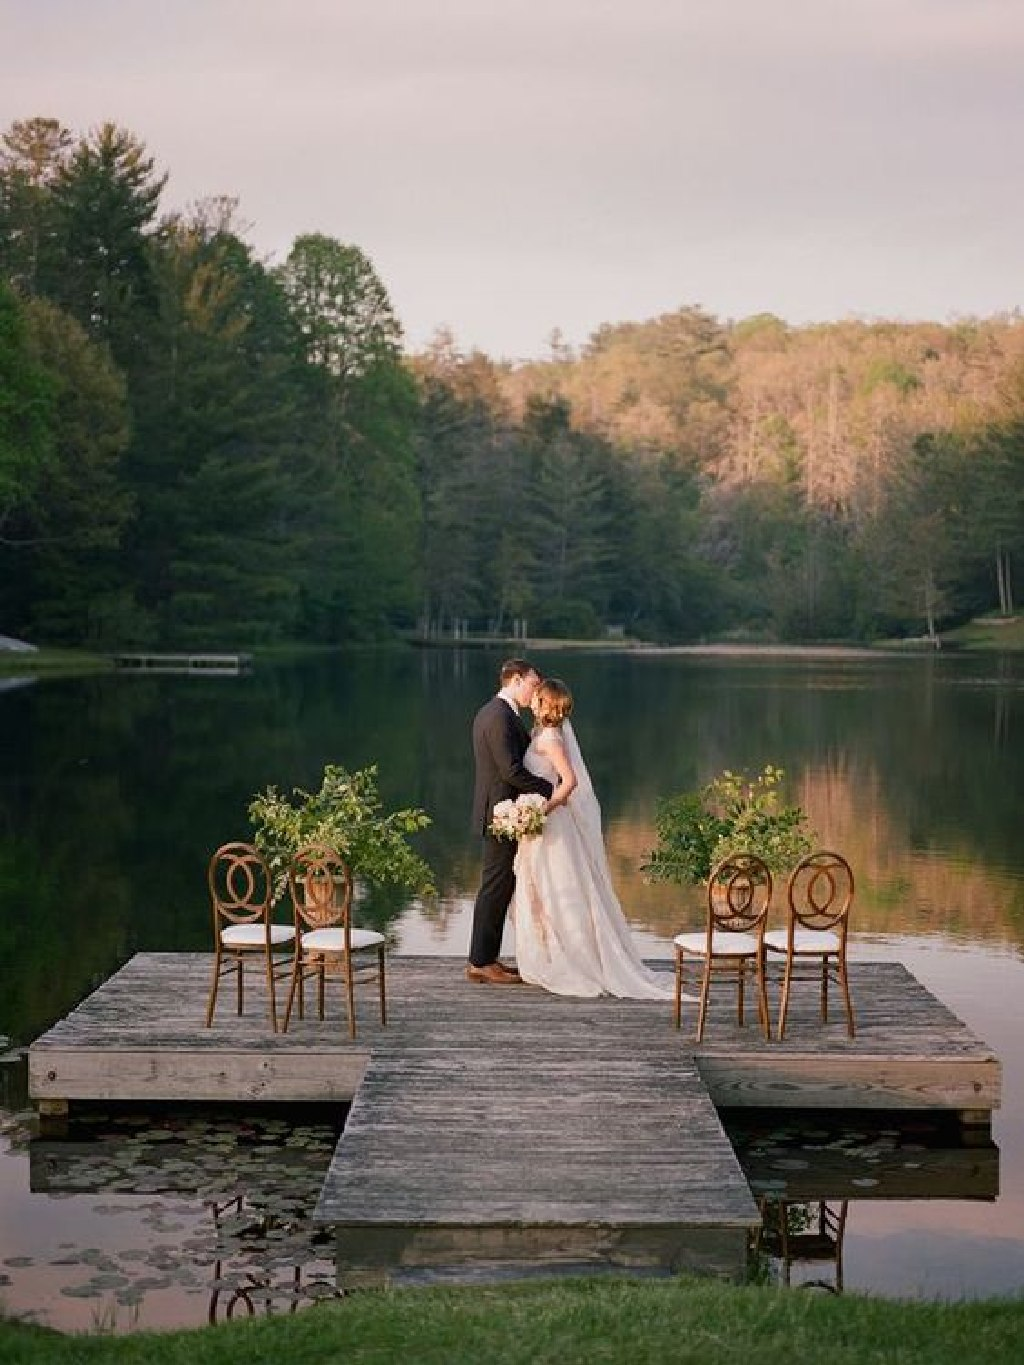 Cancelled or tweaked? Intimate ceremony ideas during COVID-19